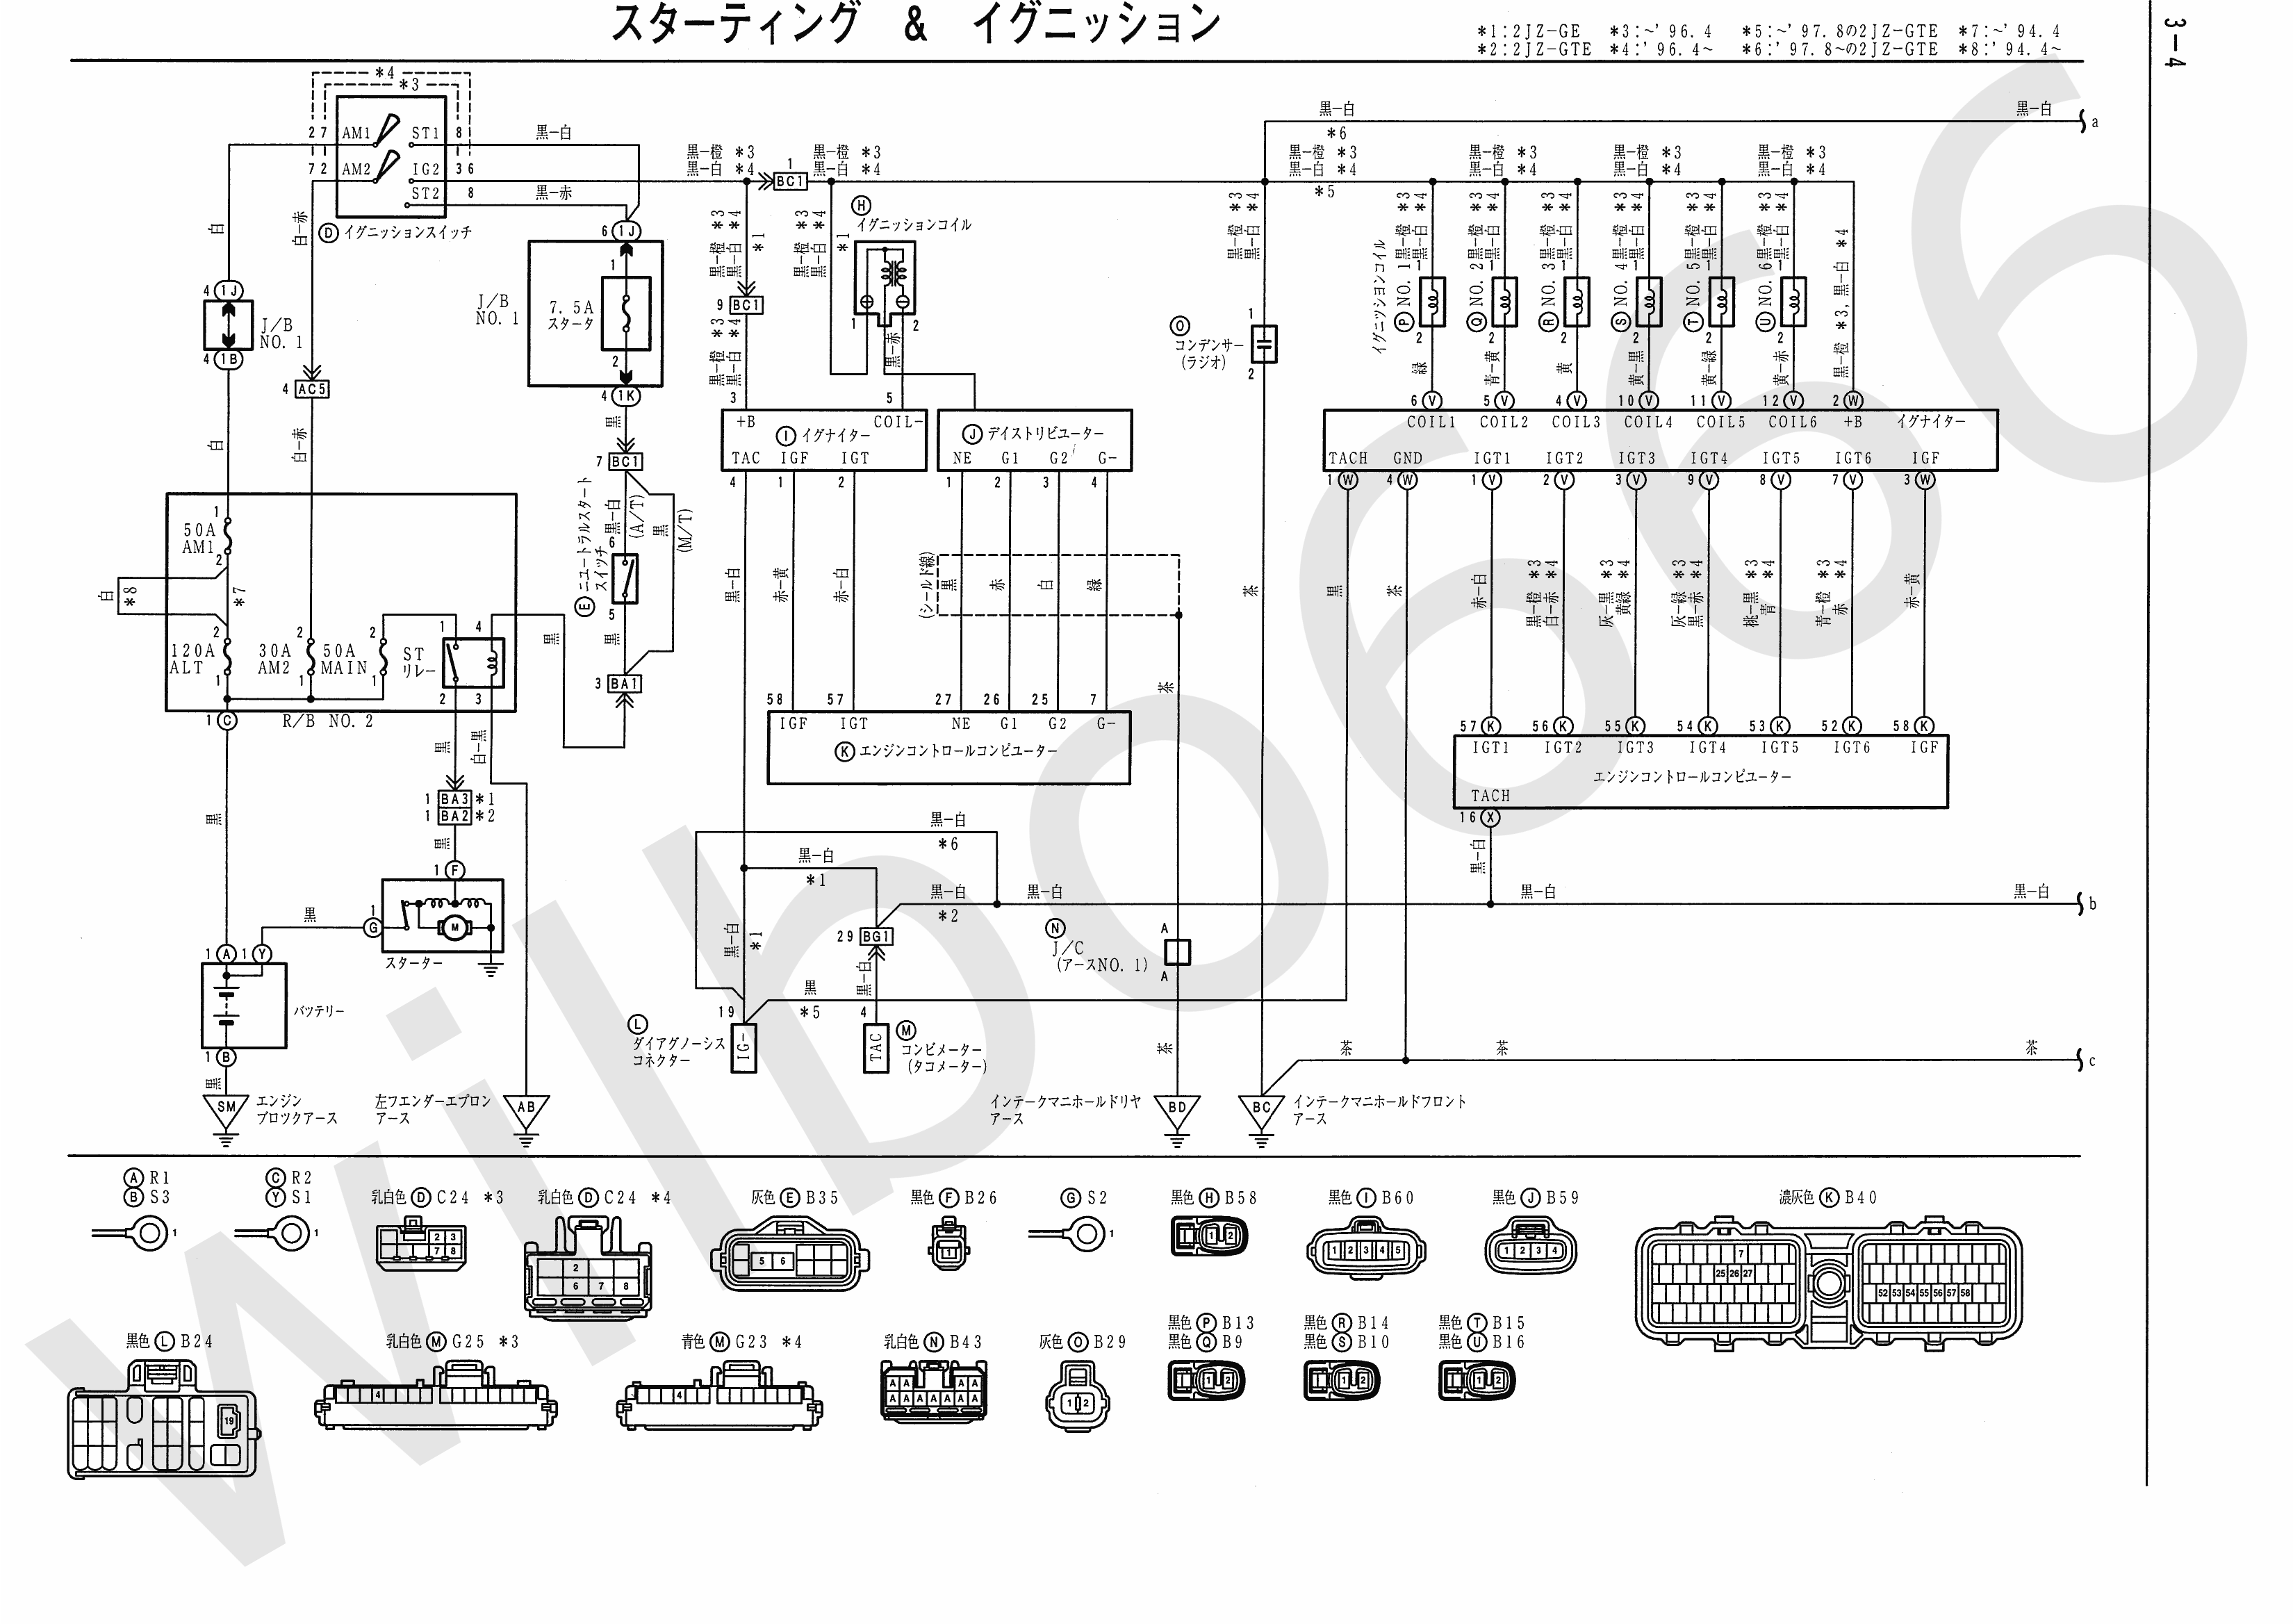 JZA80 Electrical Wiring Diagram 6742505 3 4?resize=665%2C471 100 [ 1jz ge auto help mechanical electrical pakwheels forums cressida 1jz wiring harness at soozxer.org